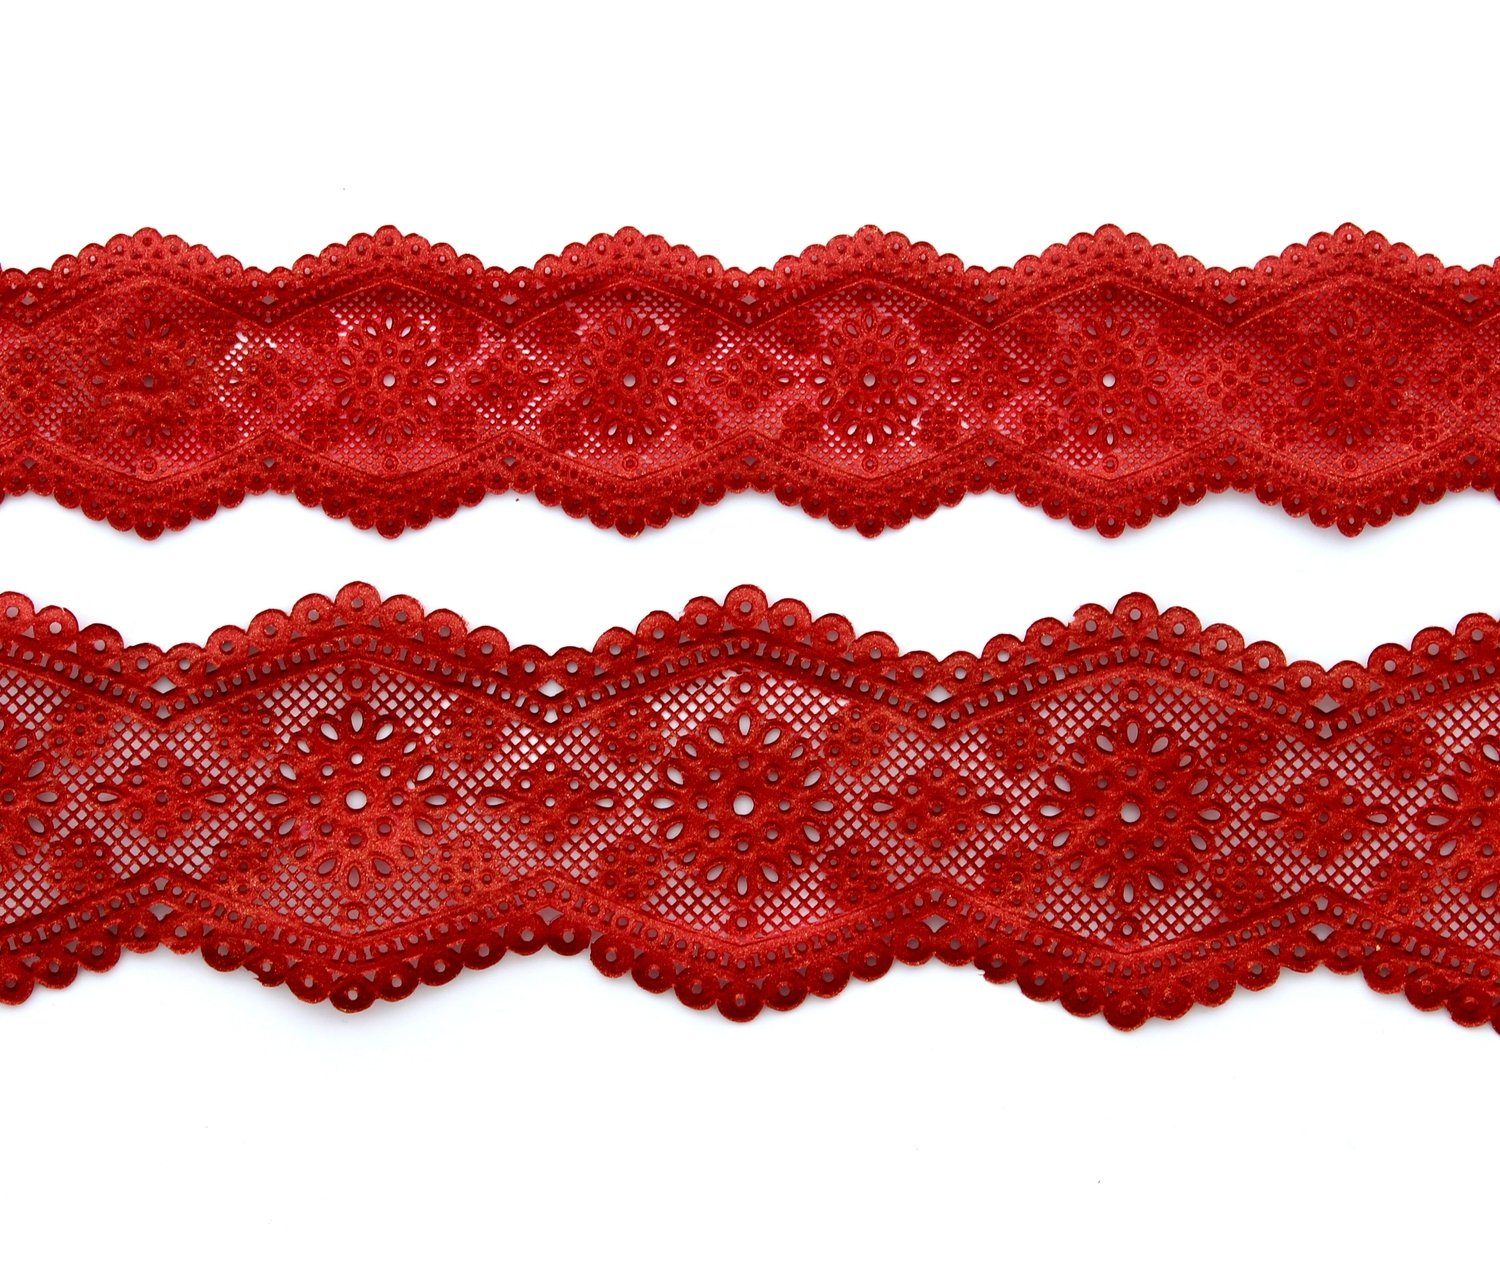 SALE!!! Claire Bowman - 3D & 2D Cake Lace Mat Broderie Anglaise - Τρισδιάστατο & Δισδιάστατο Πατάκι δαντέλας με σχέδιο Βελονάκι Broderie Anglaise